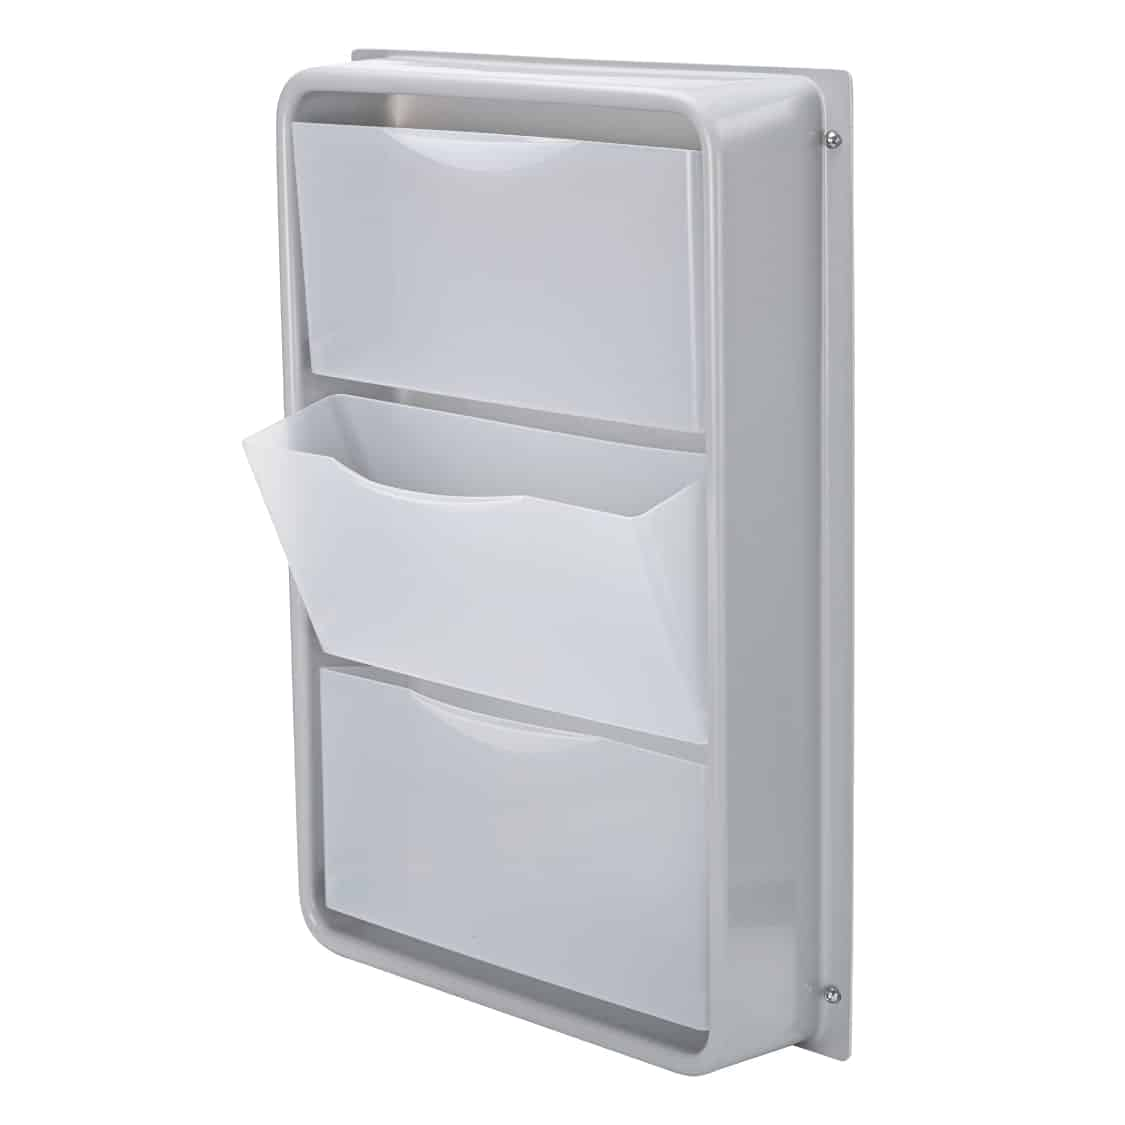 Foldaway side drawer unit